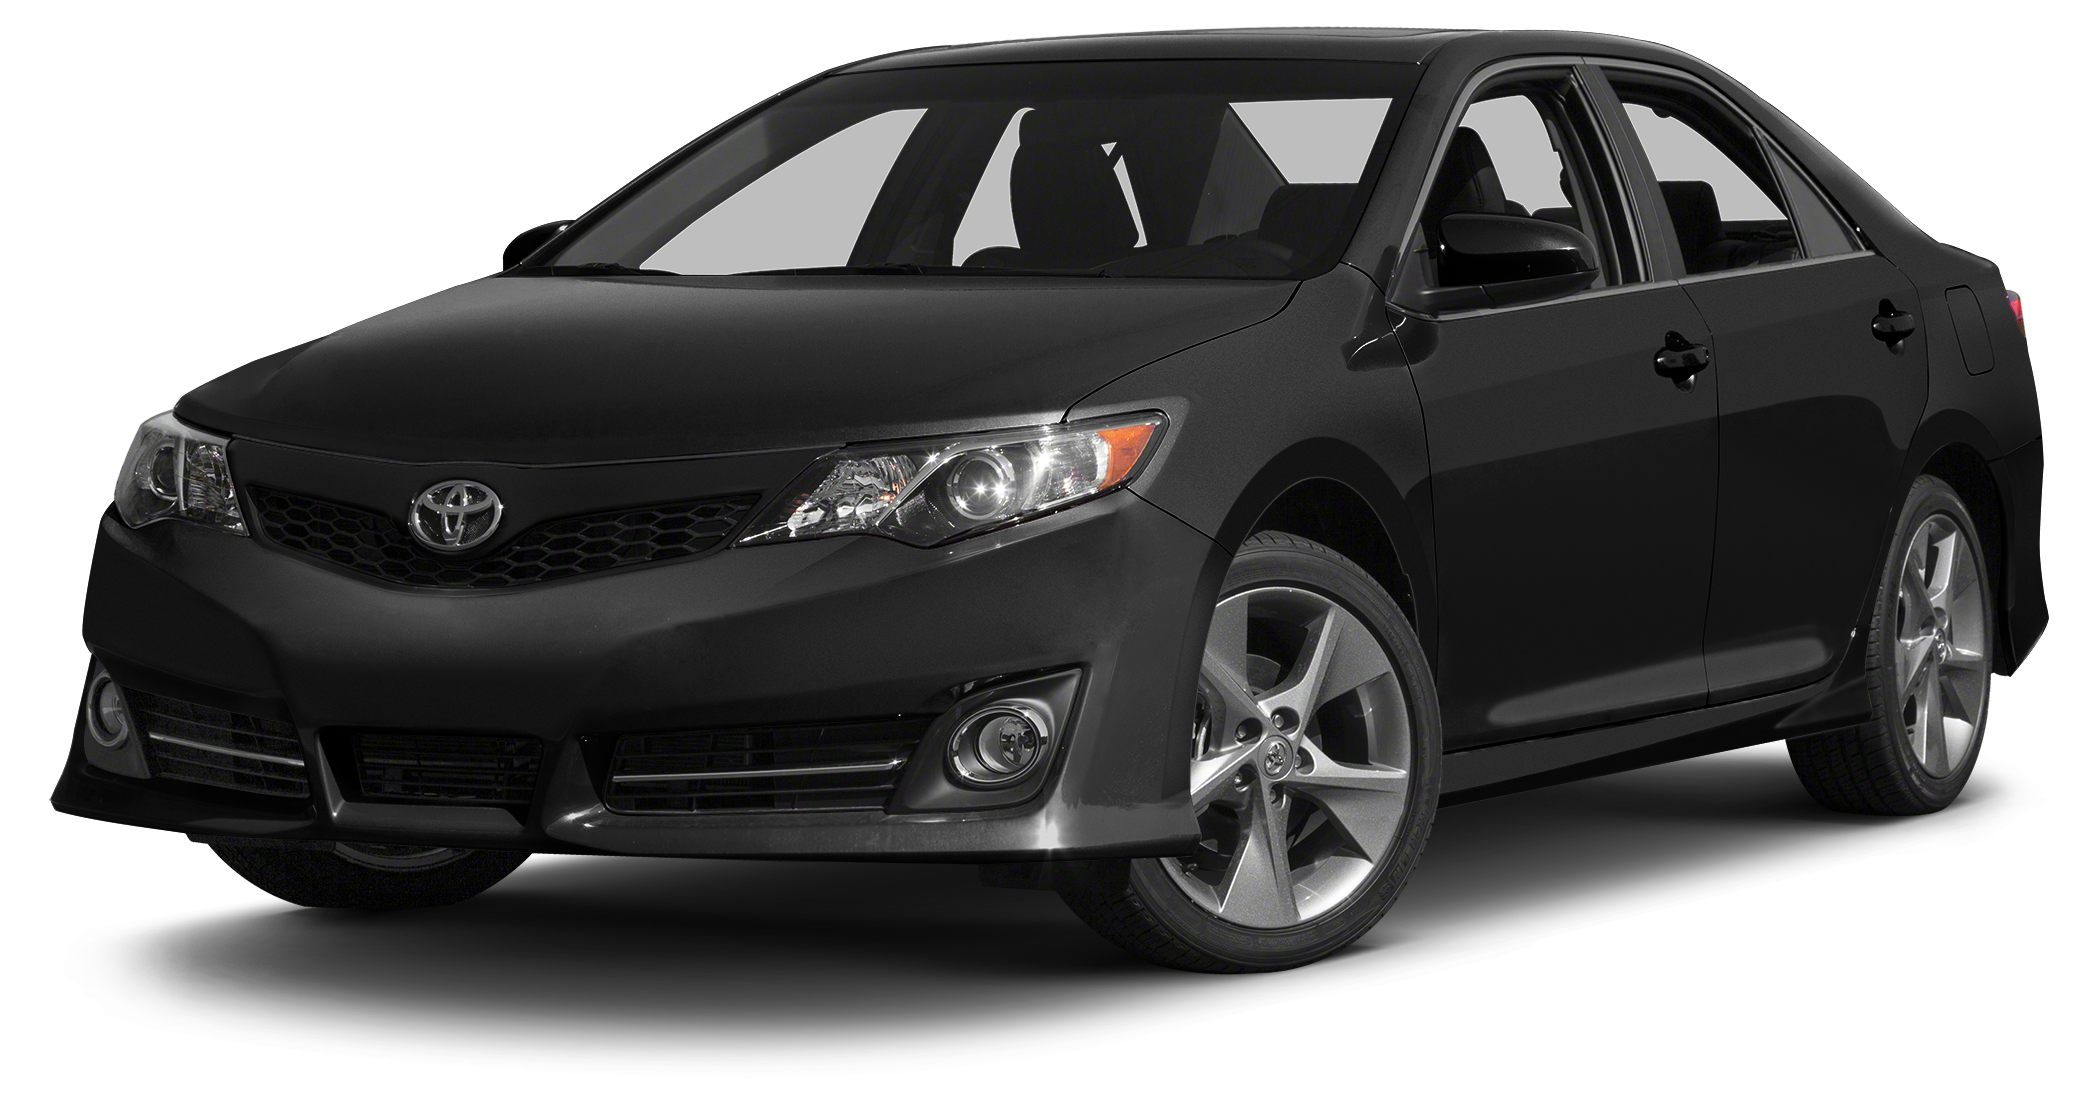 2014 Toyota Camry SE FUEL EFFICIENT 35 MPG Hwy25 MPG City CARFAX 1-Owner SE trim Sunroof iPod